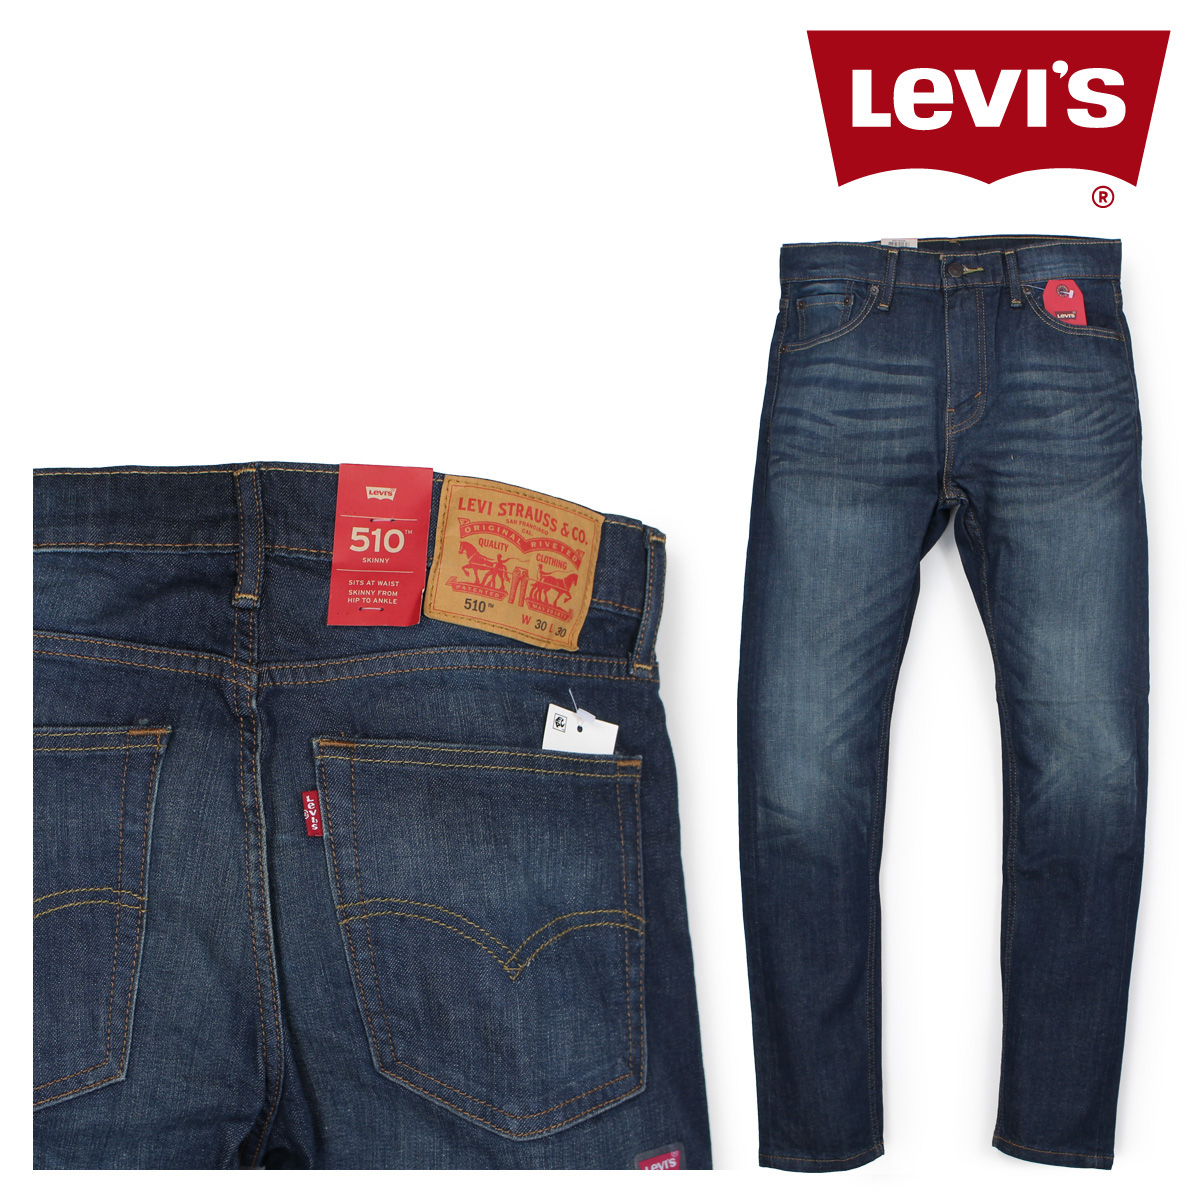 Image result for Levis